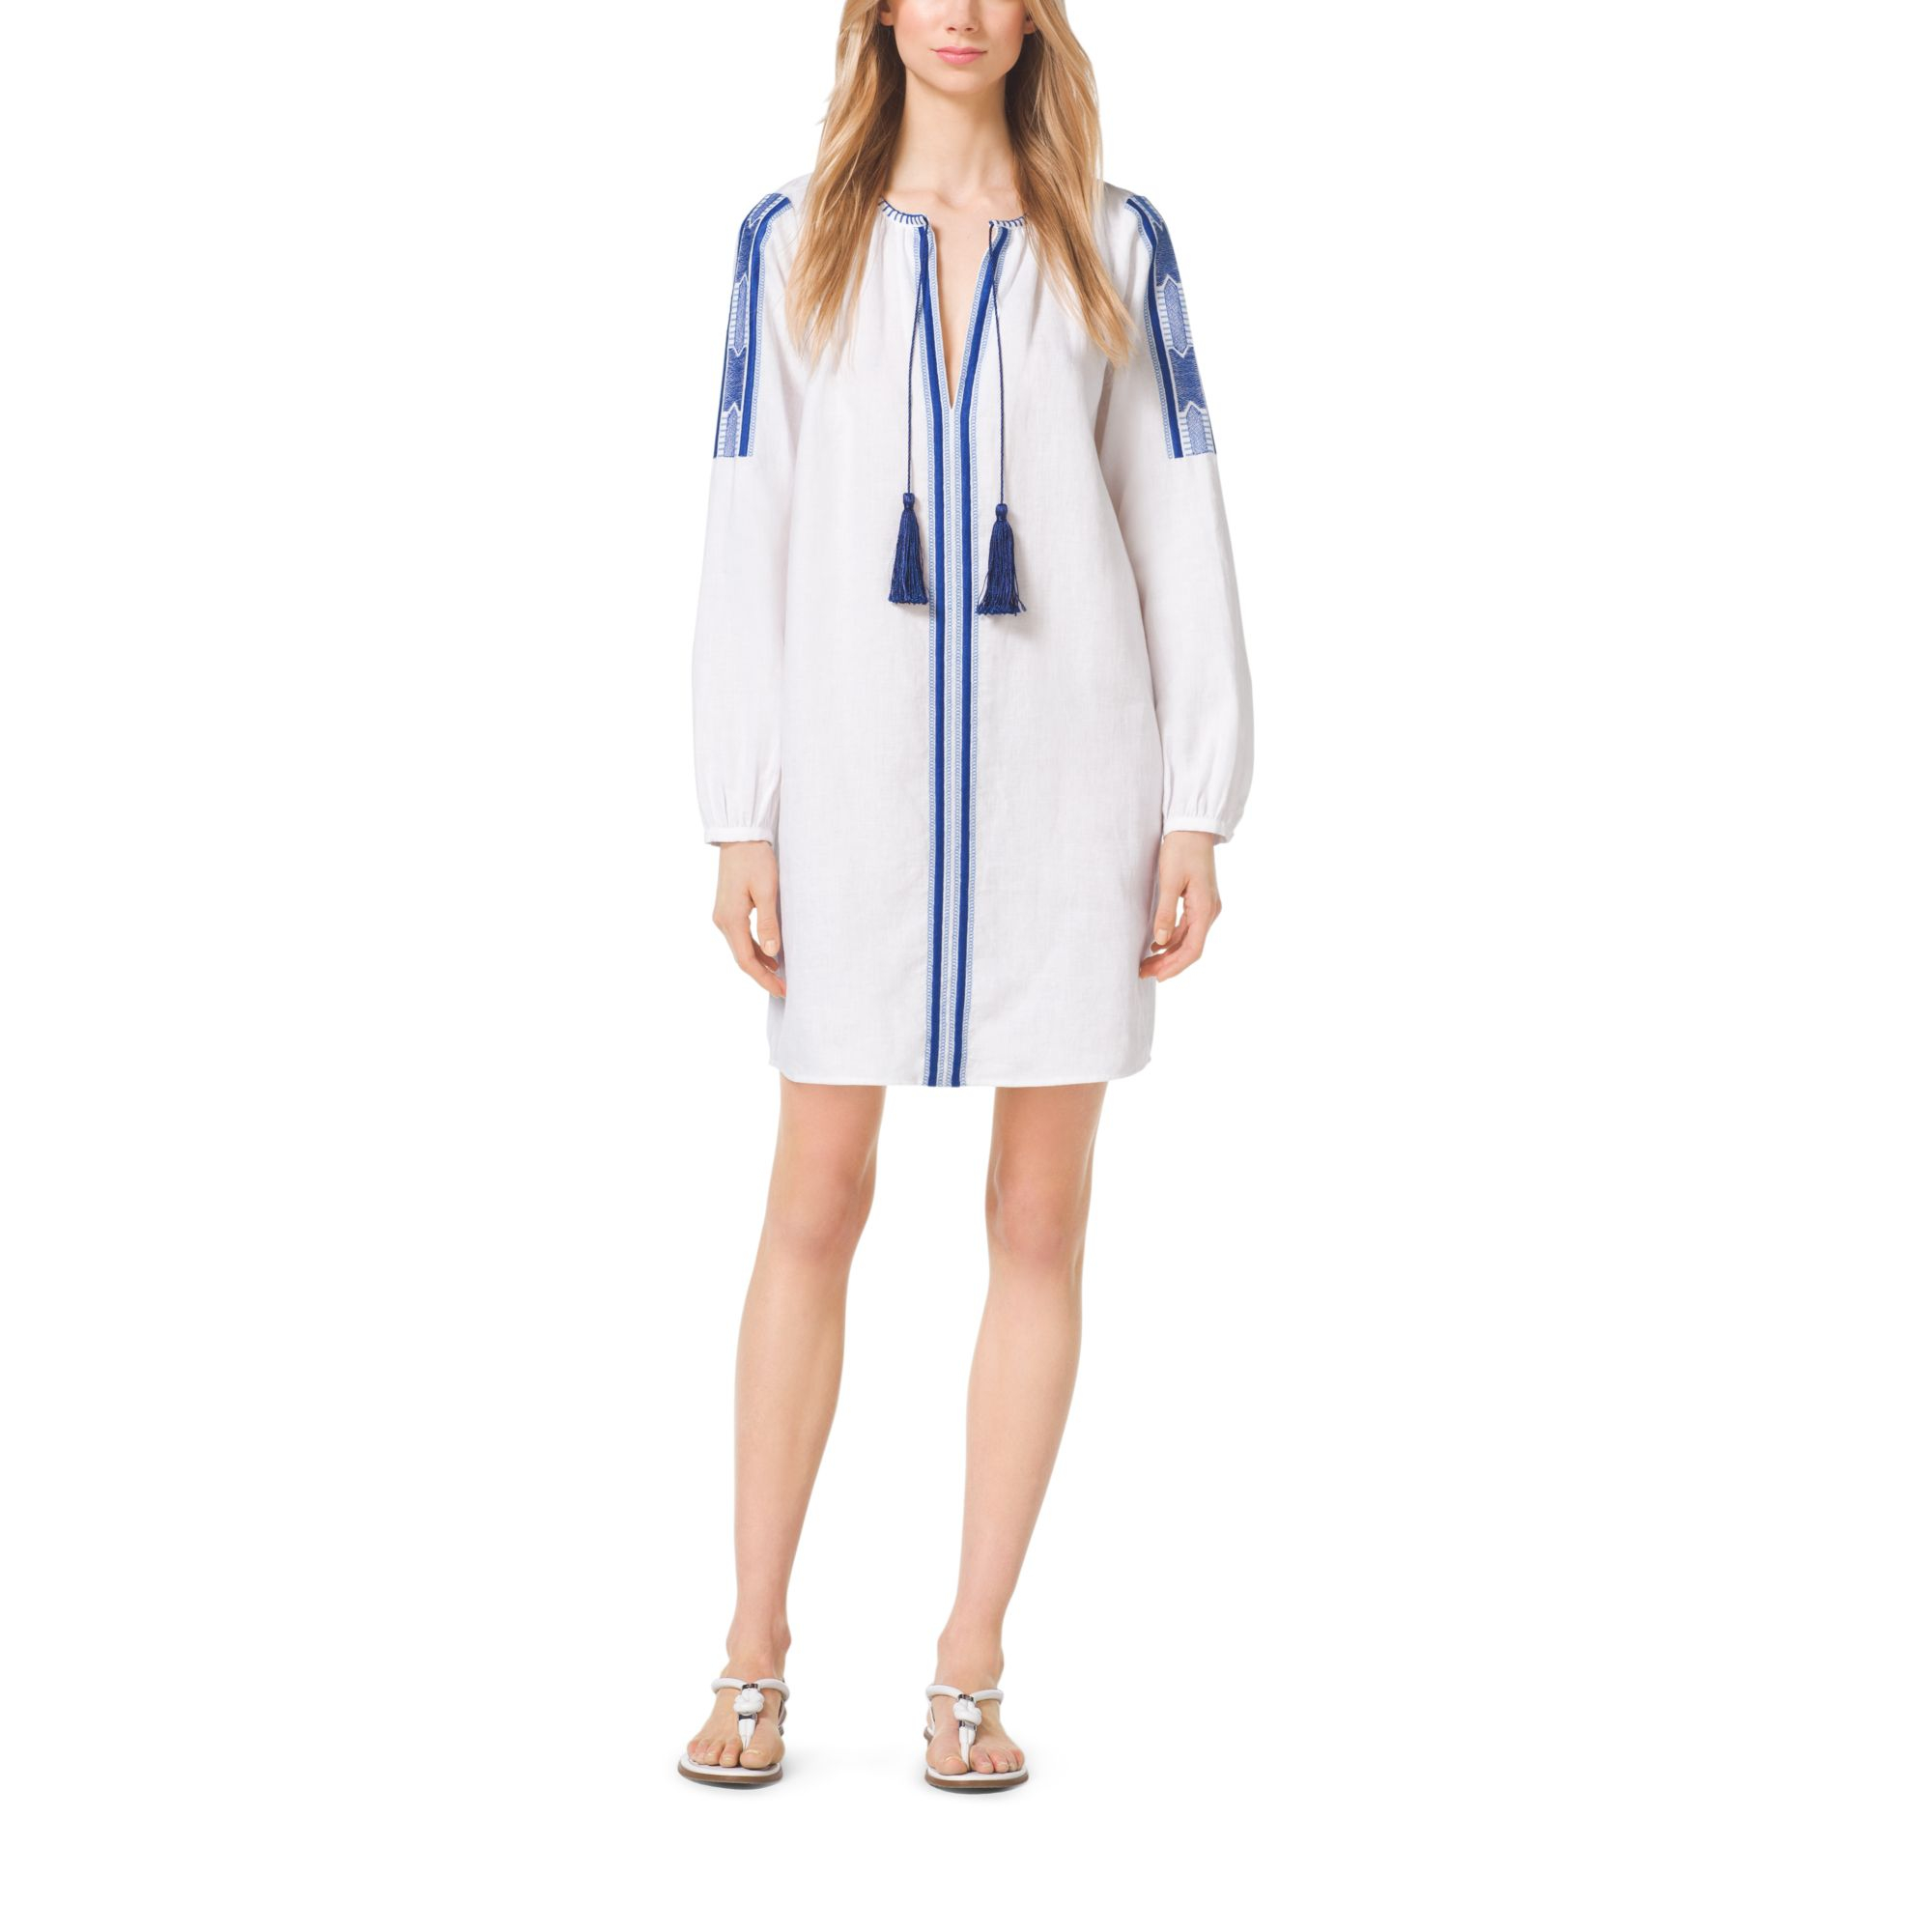 fb65ce4a6fd Lyst - Michael Kors Tasseled Embroidered Linen Tunic in Natural